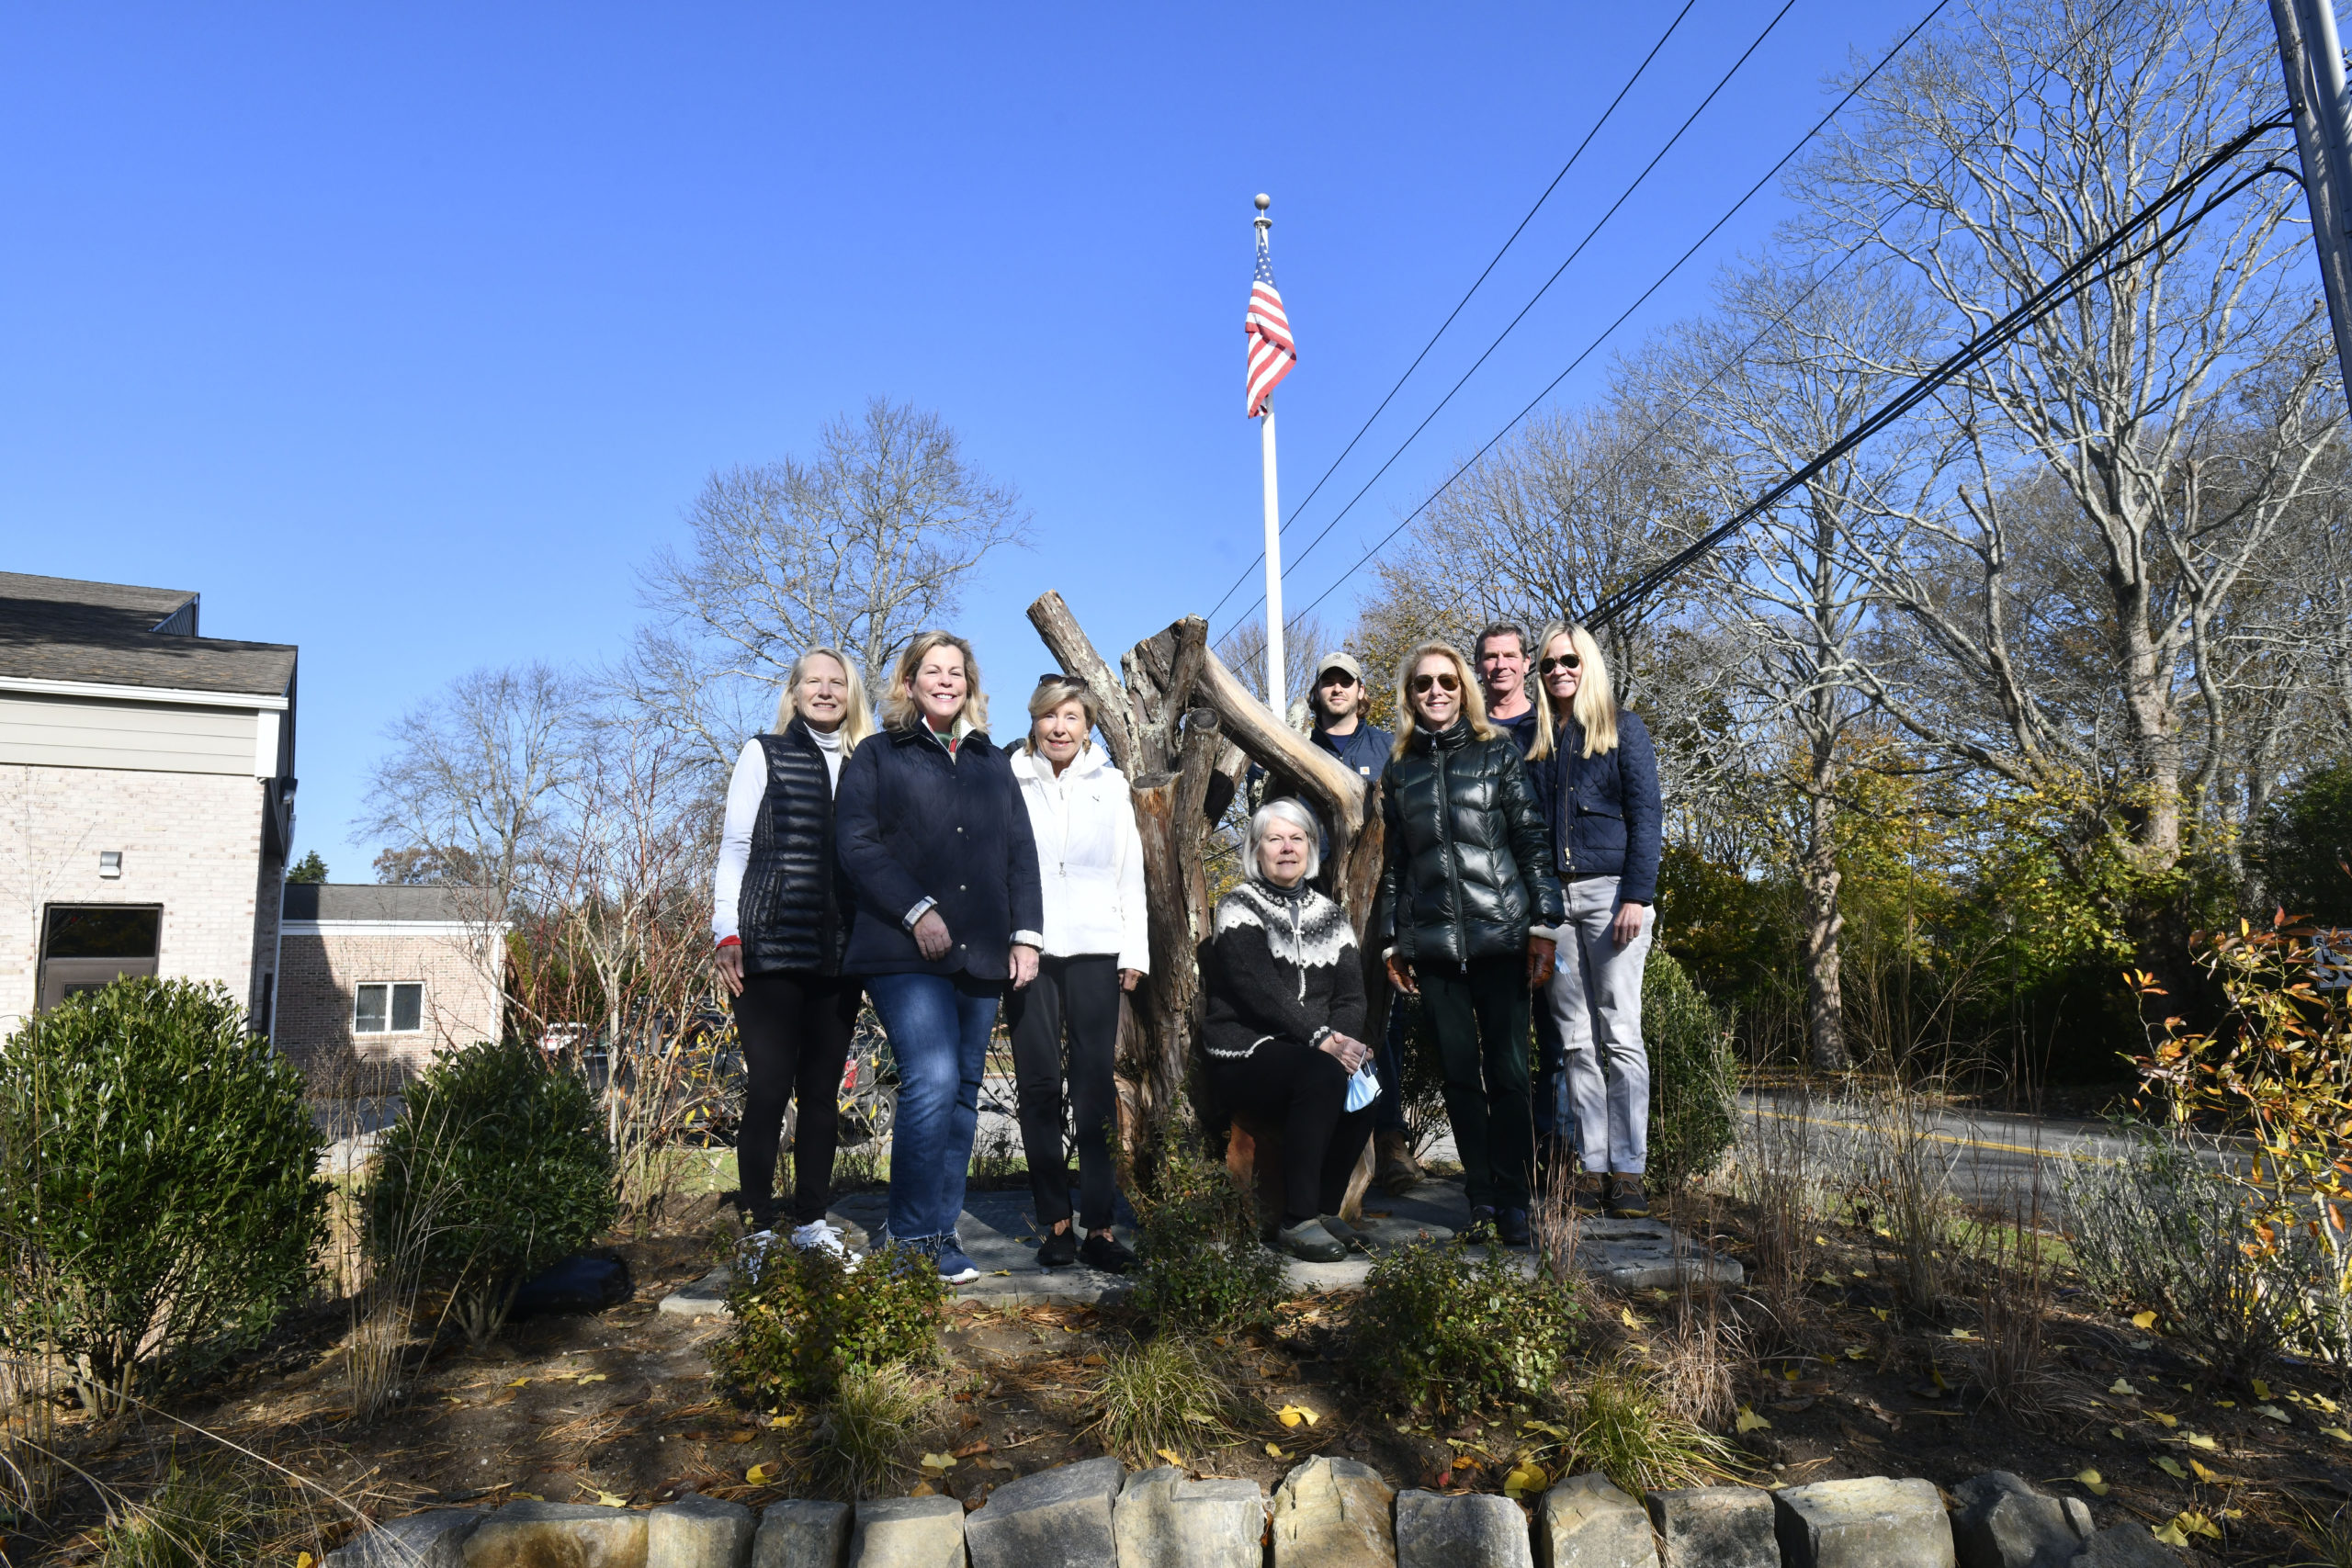 The Southampton Garden Club, along with Jacob Antilety Landscaping, recently revamped the Liberty Garden located at the Southampton Fire Station on the corner of Montauk Highway and St. Andrews Road. The Liberty Garden was created after the September 11, 2001 attacks. The garden now boasts native plants, pollinators and a sculpted yew tree stump. In the garden, left to right are, Helene Fagan Barbara Glatt, Christl Meszkat, Lydia Wallis, Alex Antilety, Sacha MacNaughton, Mark Antilety and Deborah De La Gueronniere.     DANA SHAW